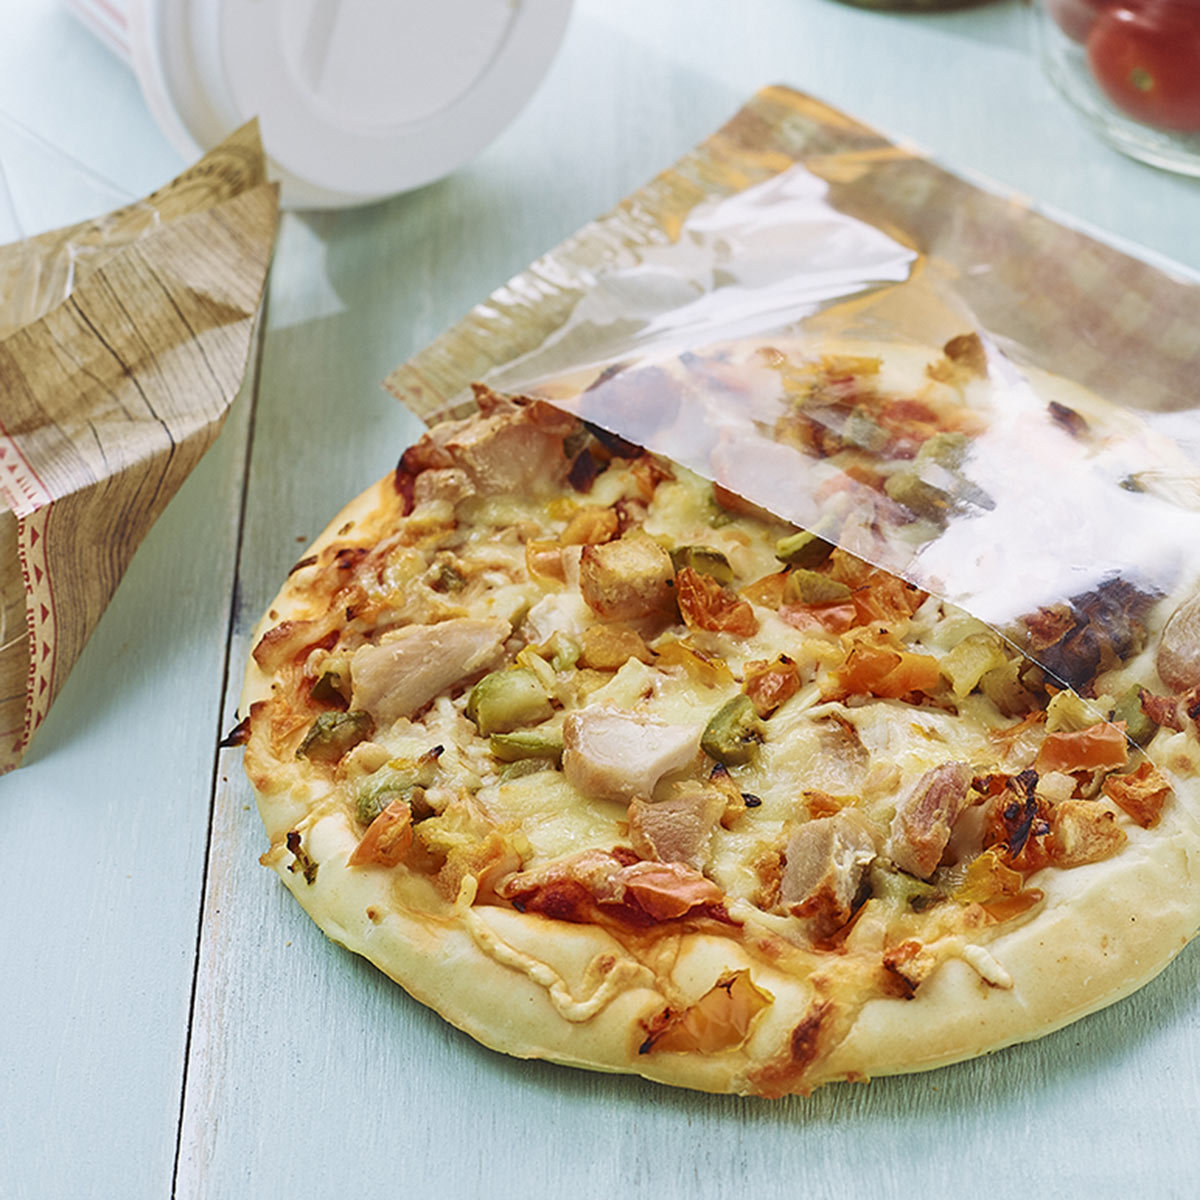 Vegetable and chicken pizza